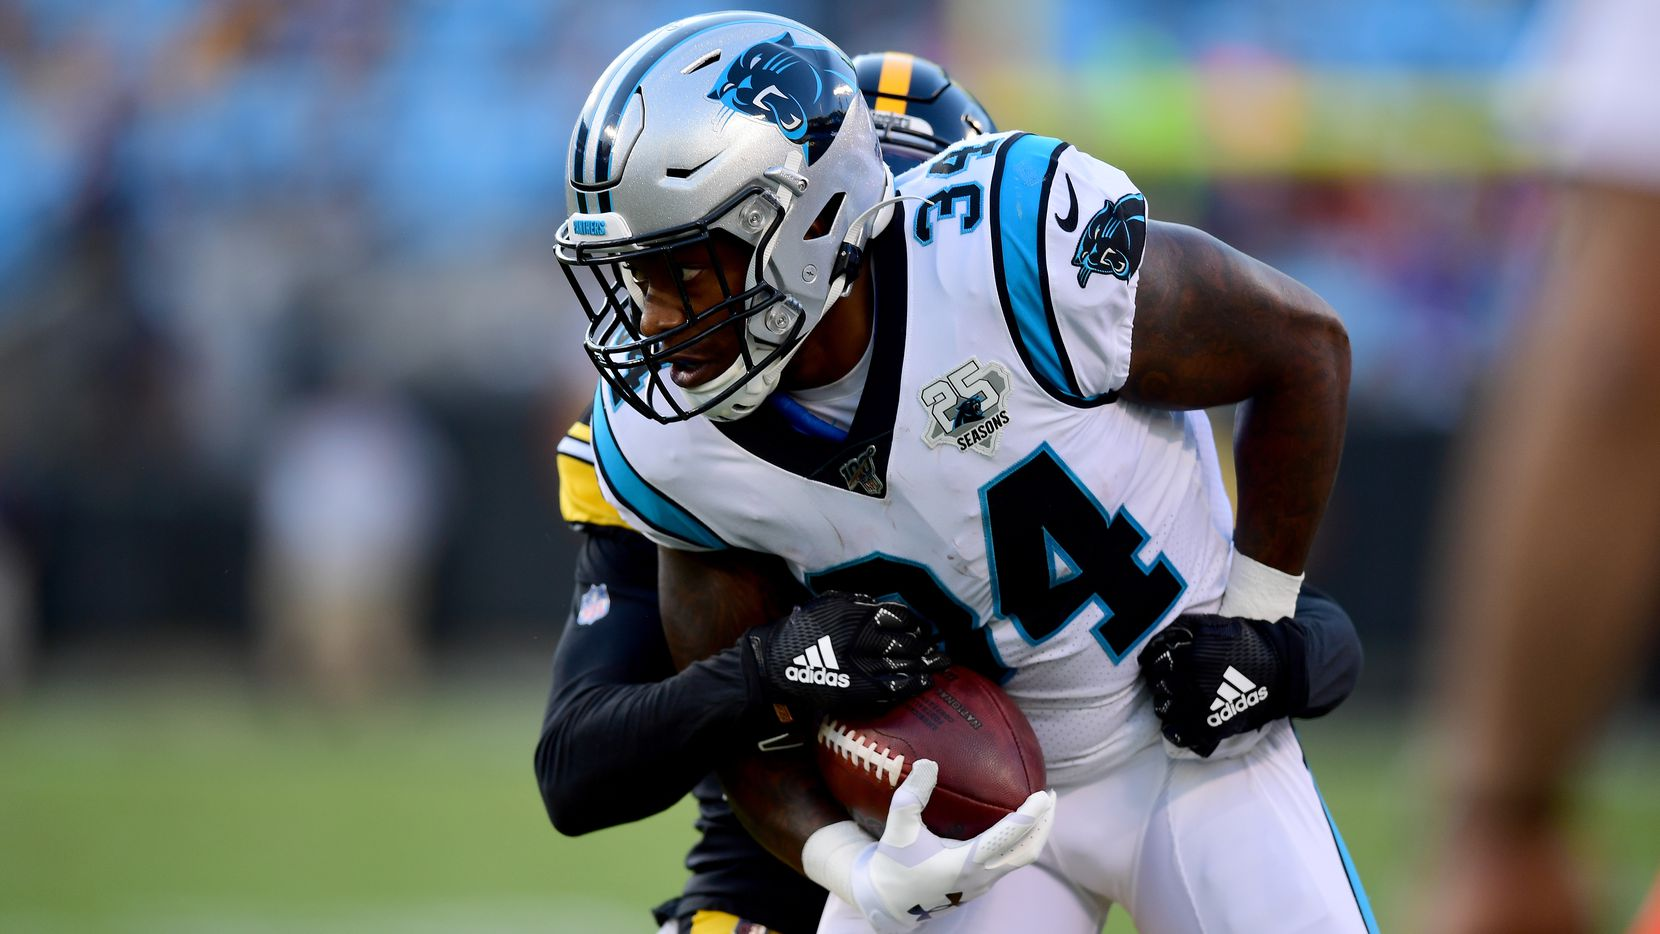 CHARLOTTE, NORTH CAROLINA - AUGUST 29: Cameron Artis-Payne #34 of the Carolina Panthers with the ball during their preseason game against the Pittsburgh Steelers at Bank of America Stadium on August 29, 2019 in Charlotte, North Carolina.